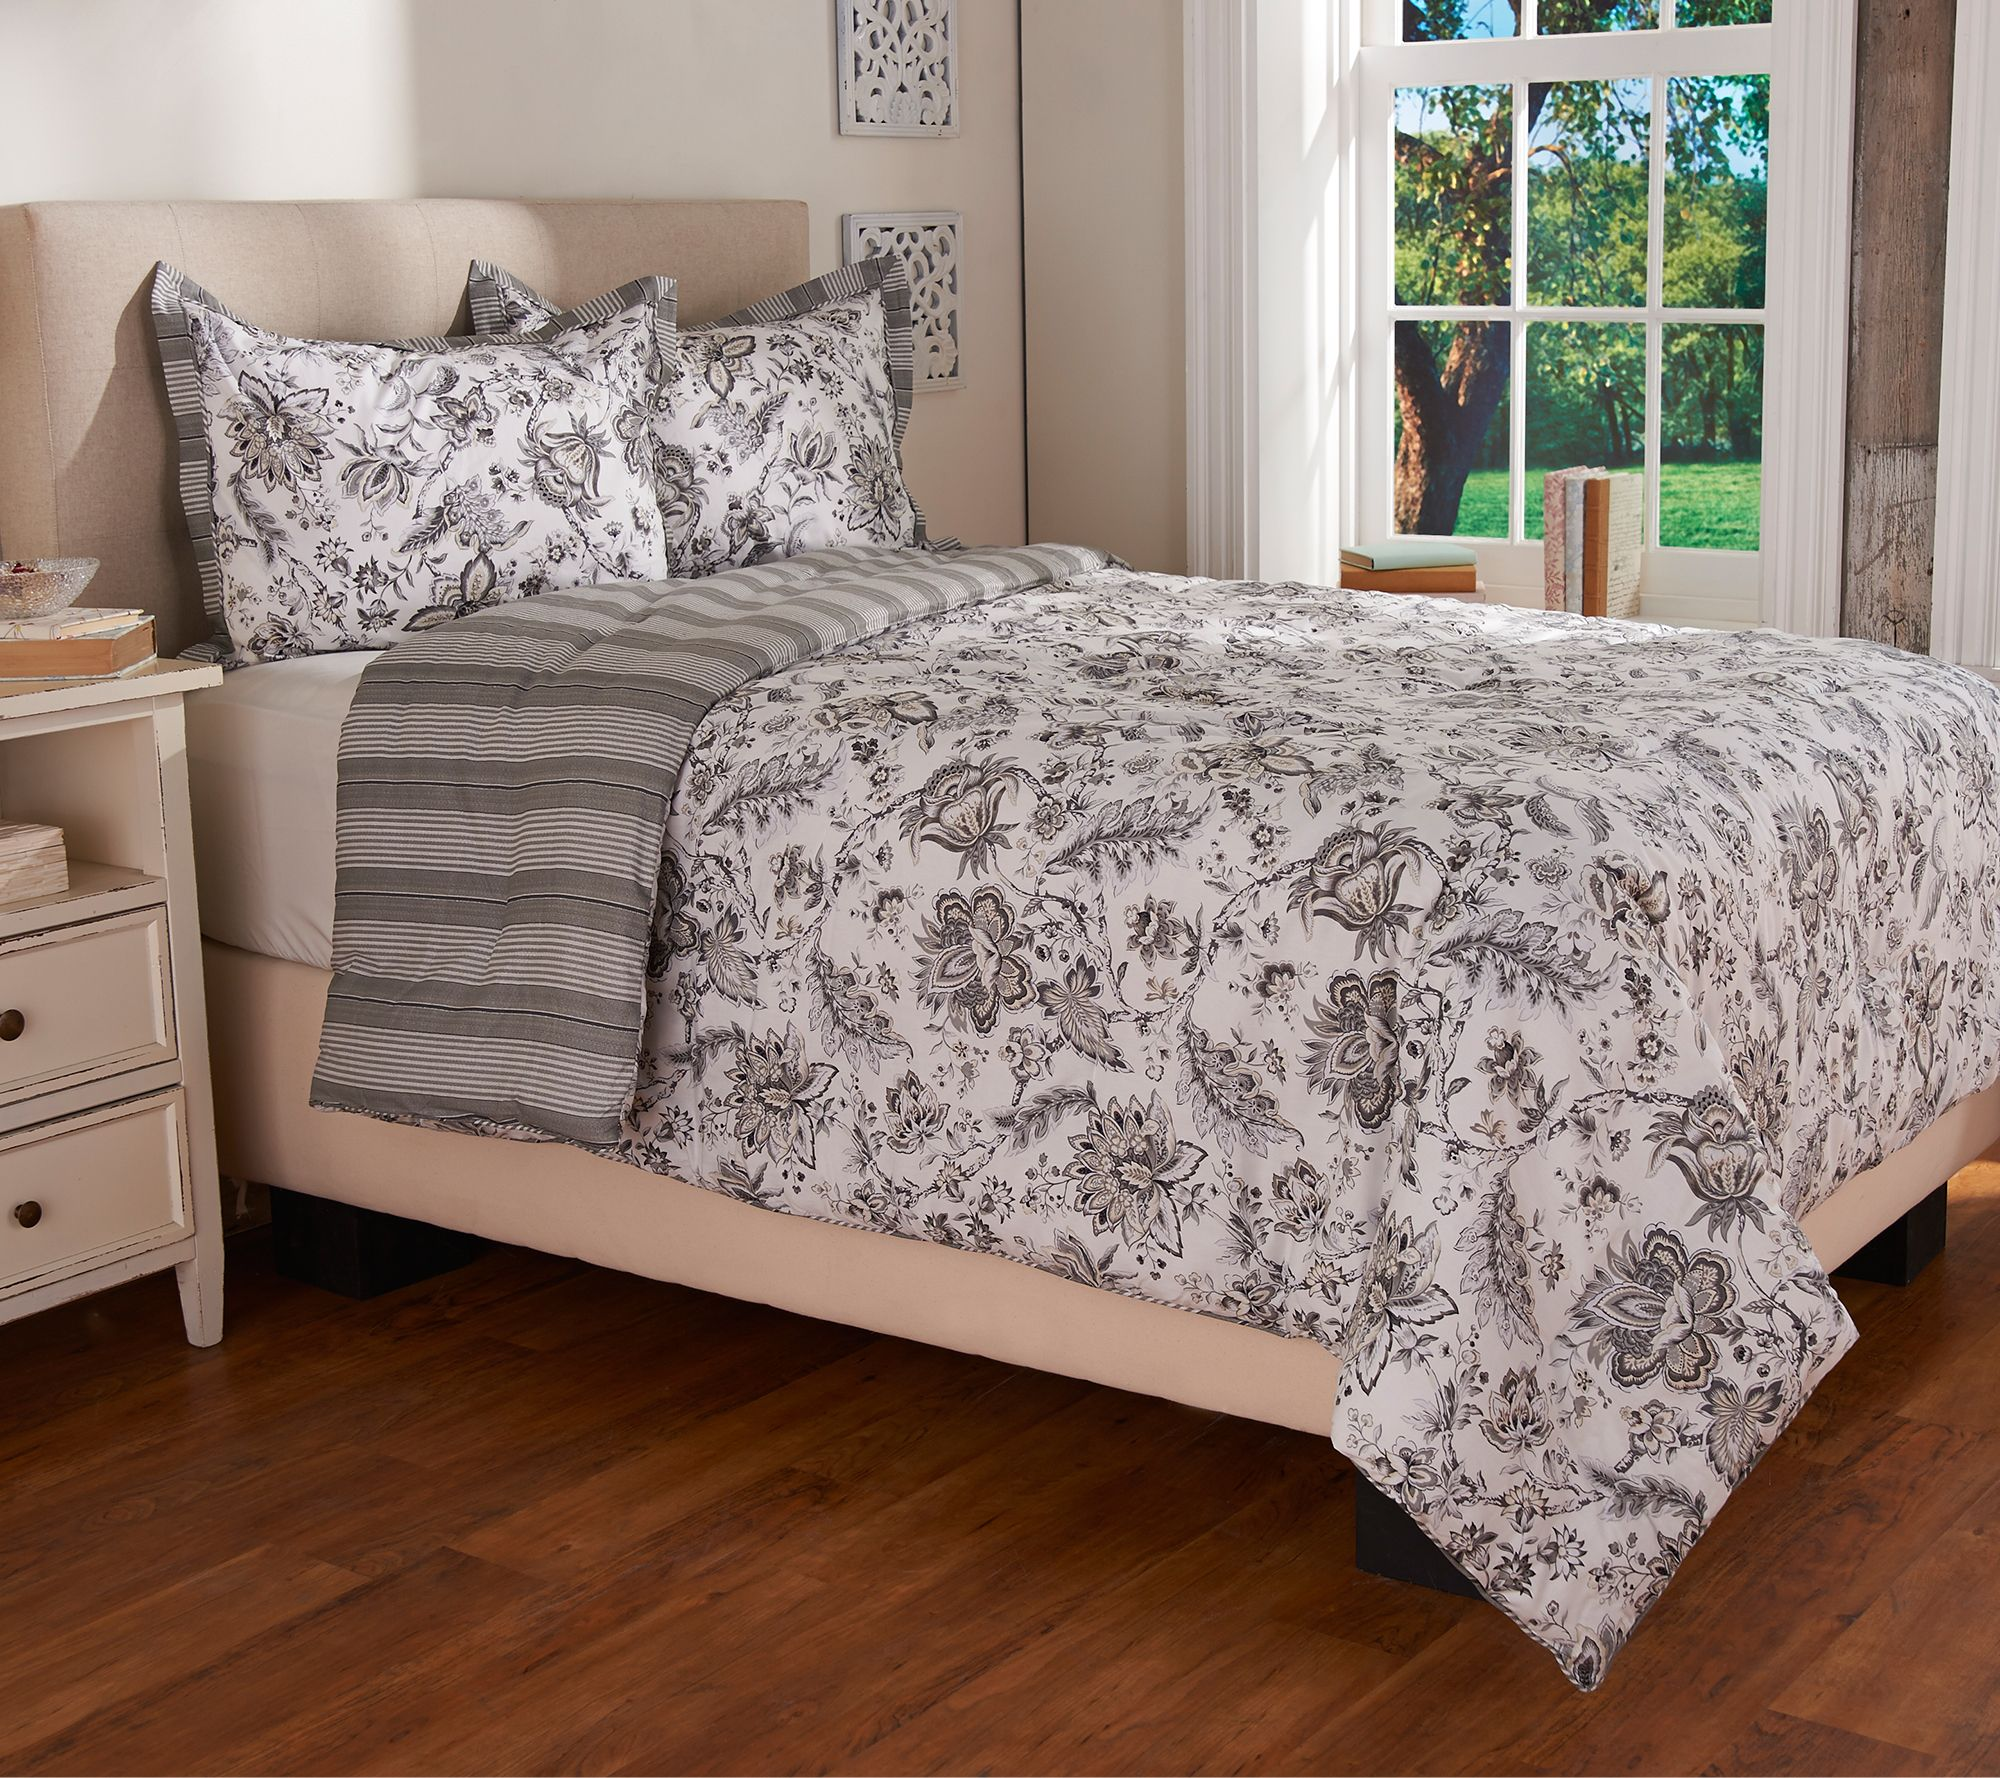 Blush Gold Vince Camuto Comforter Light Pink Glam Twin